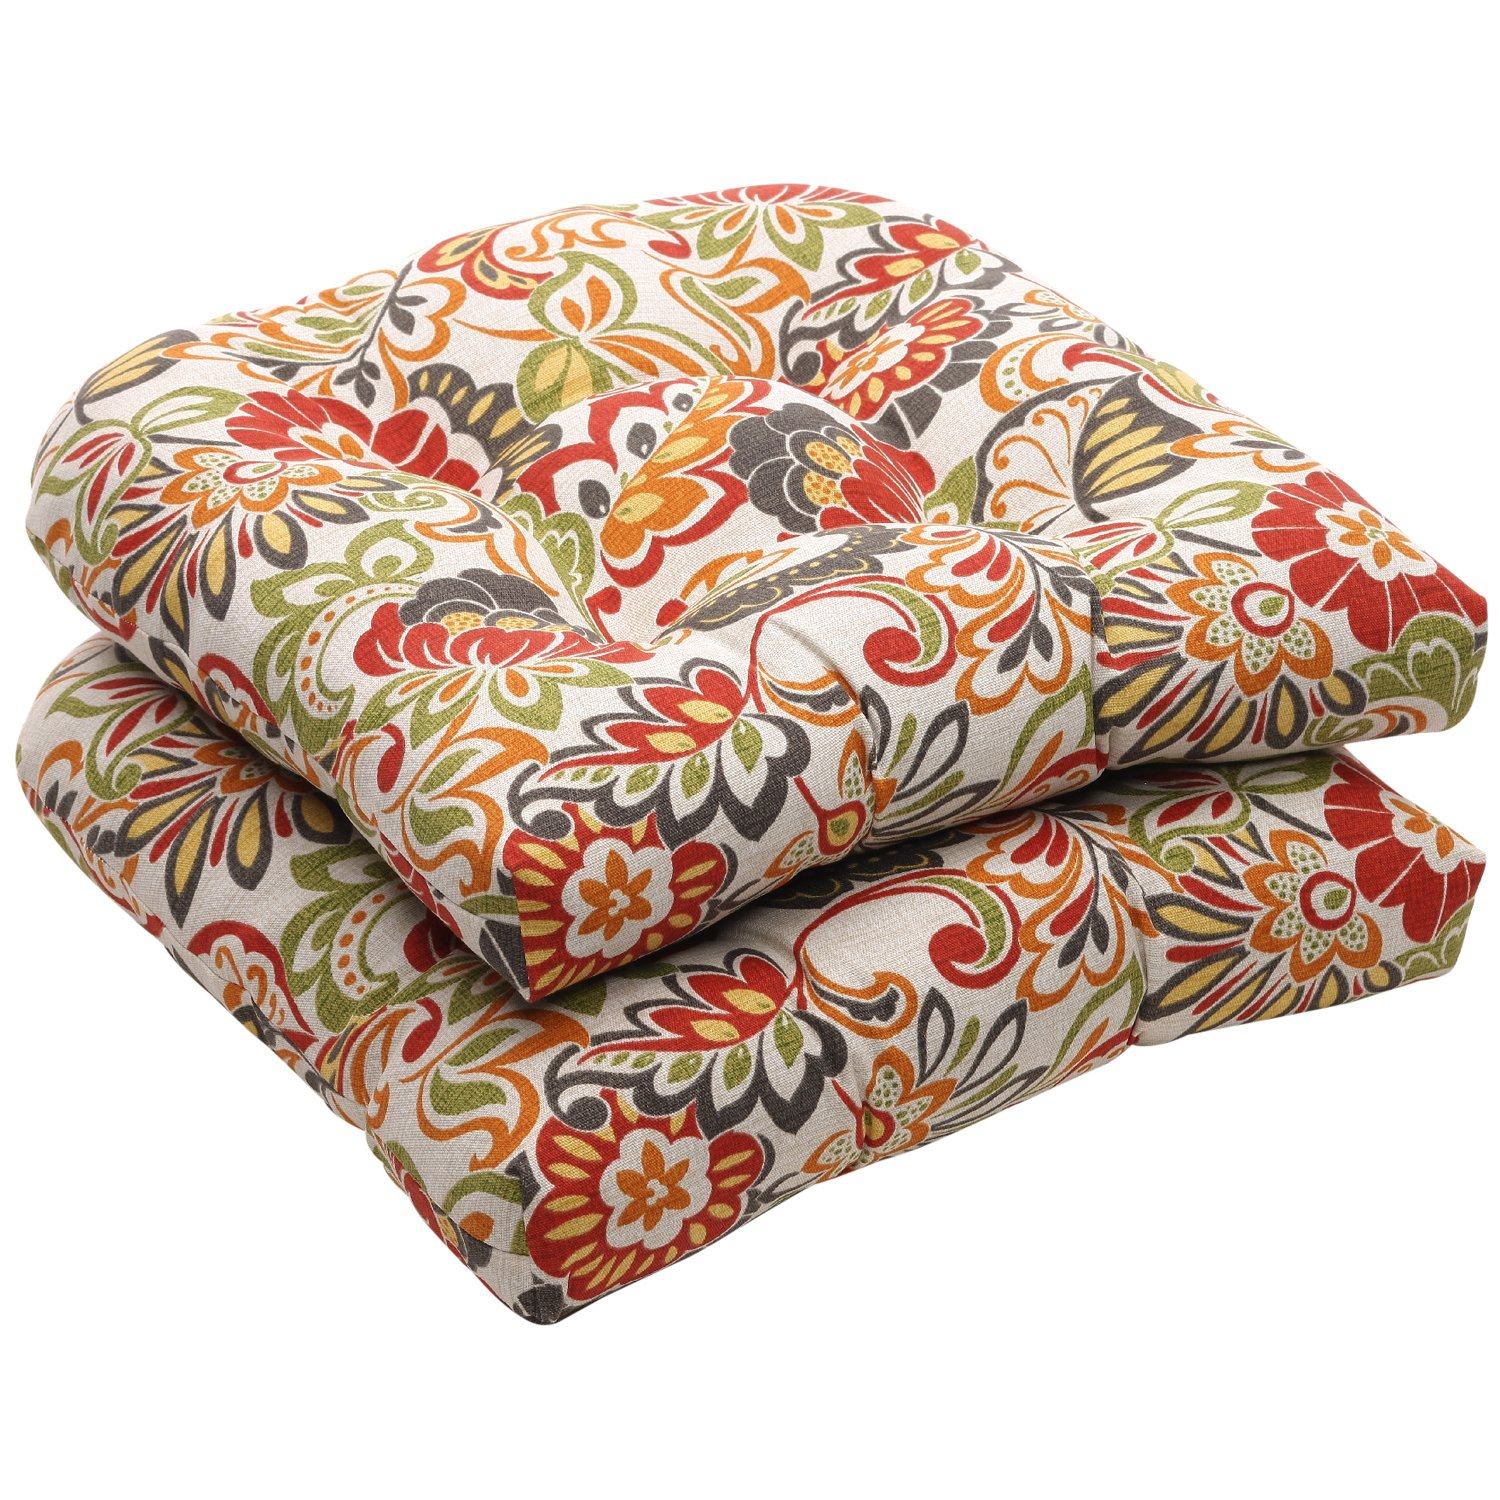 Pillow Perfect Indoor/Outdoor Multicolored Modern Floral Wicker Seat  Cushions, 2-Pack - Patio Furniture Cushions Amazon.com